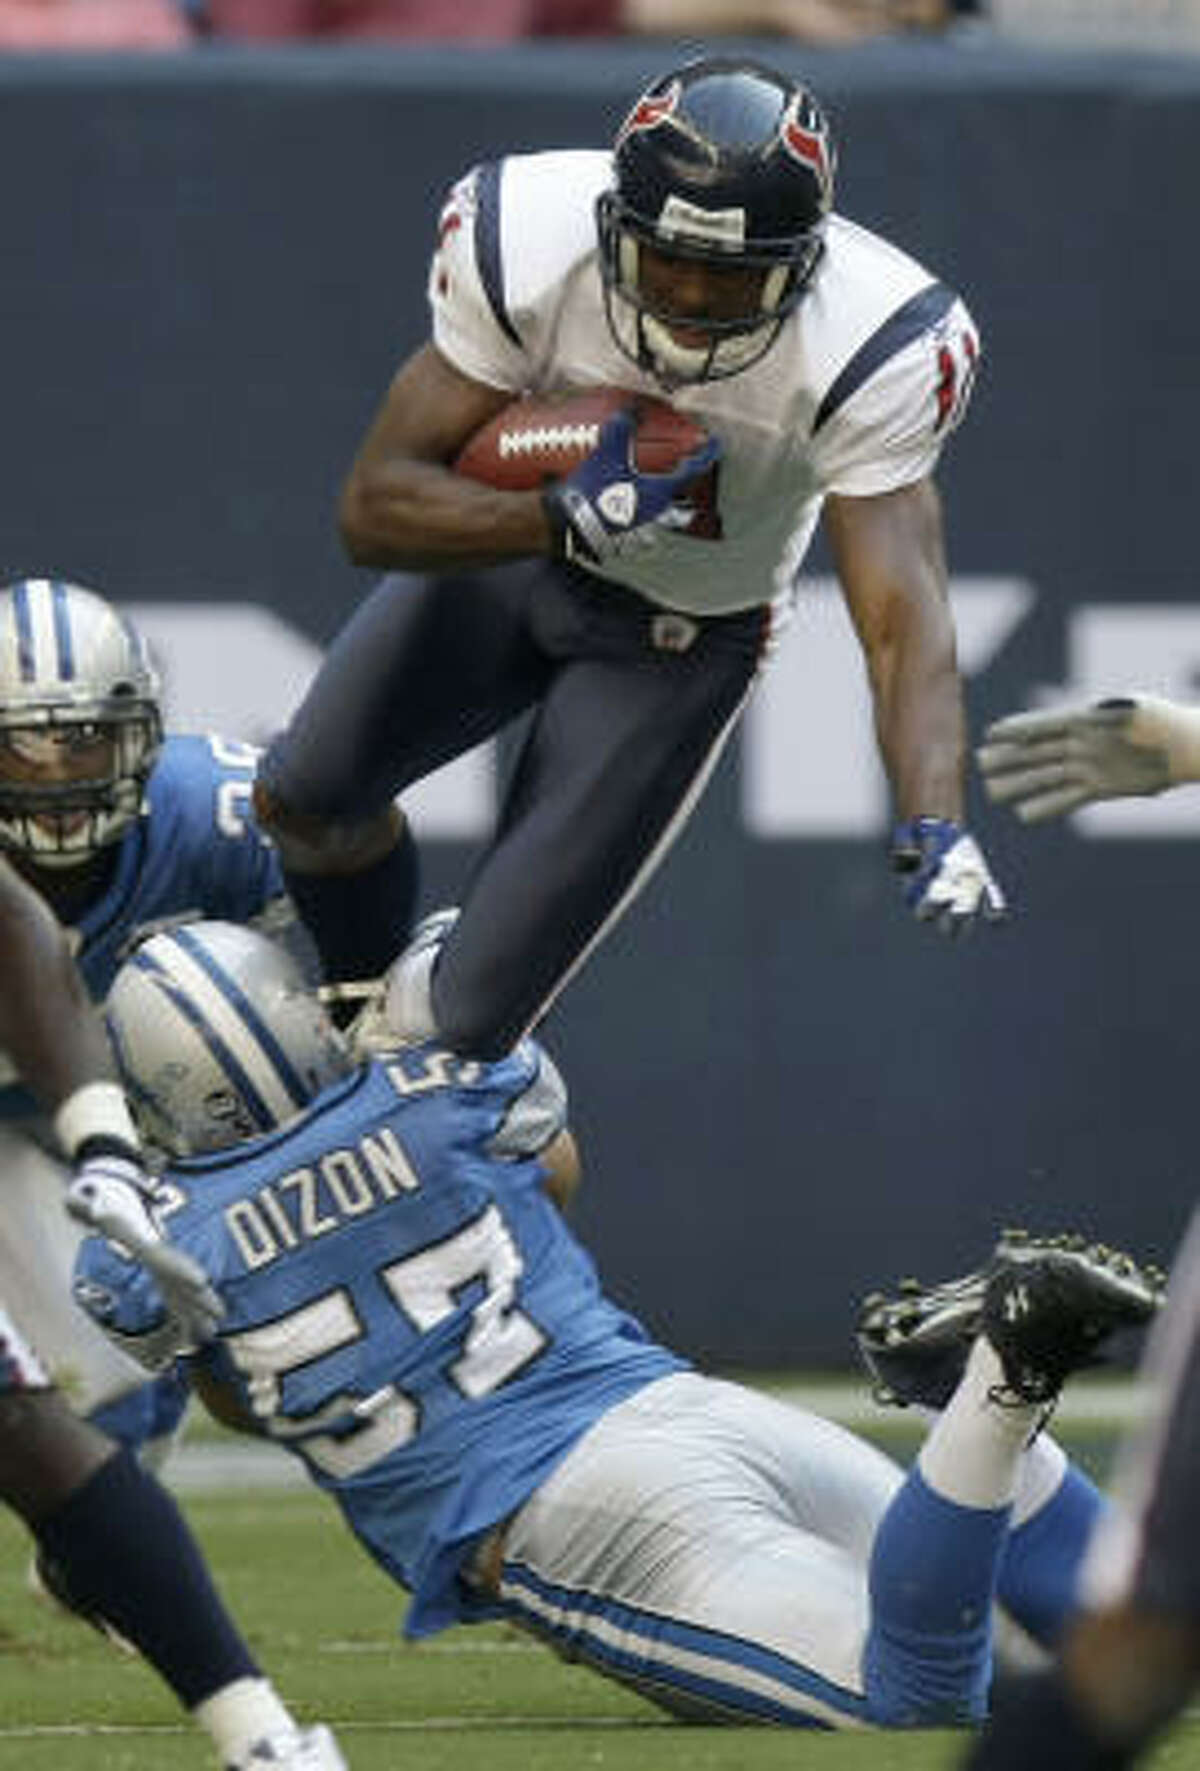 Texans wide receiver Andre' Davis could be out for at least three weeks after undergoing surgery to repair a dislocated ring finger on his left hand.